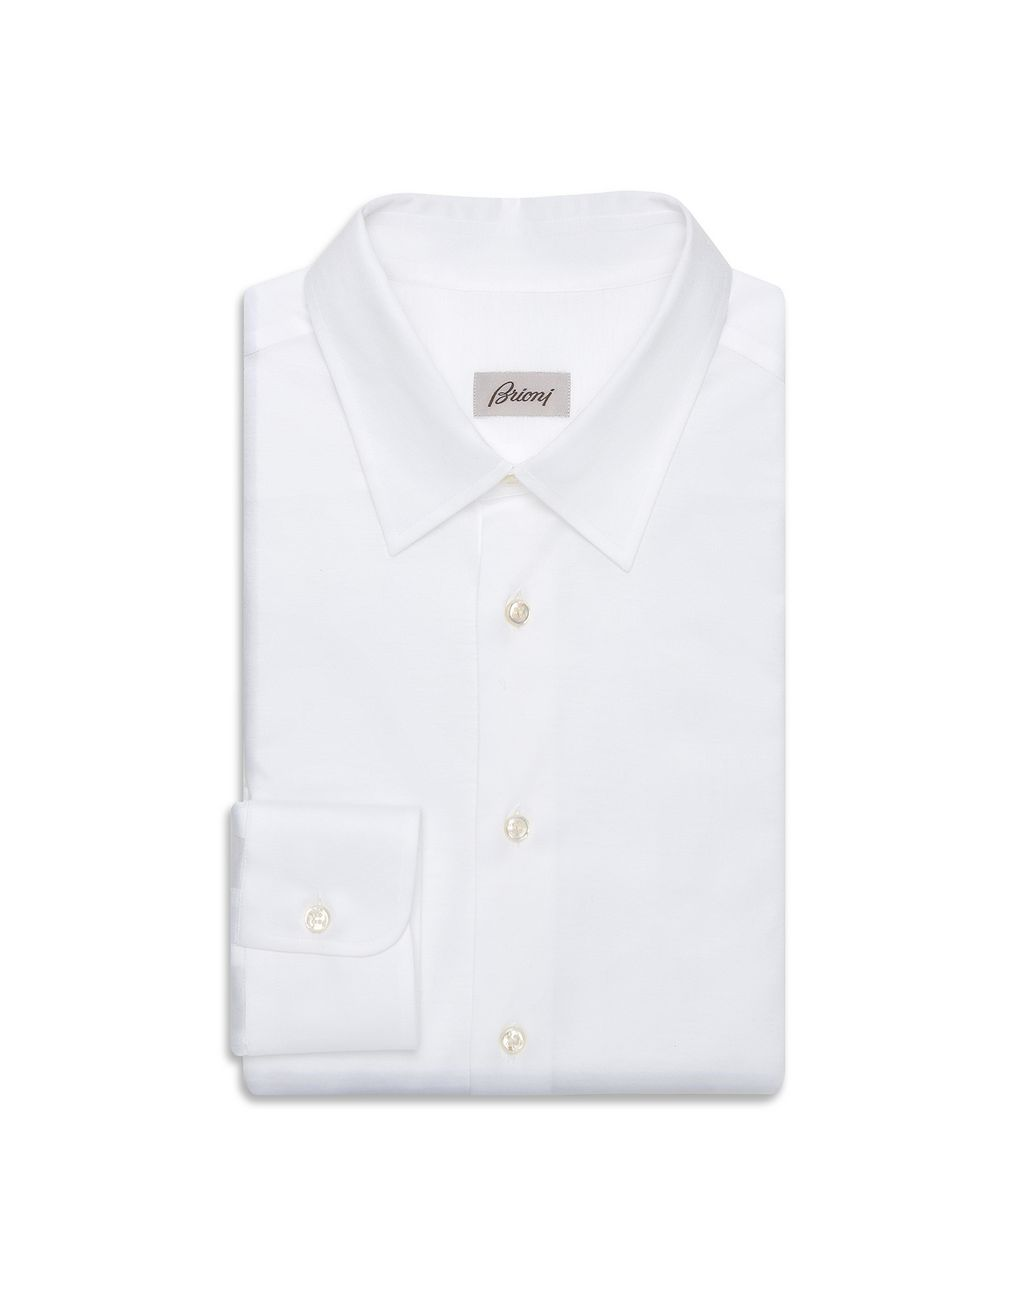 BRIONI White Long Sleeved Jersey Shirt Leisure shirt Man f